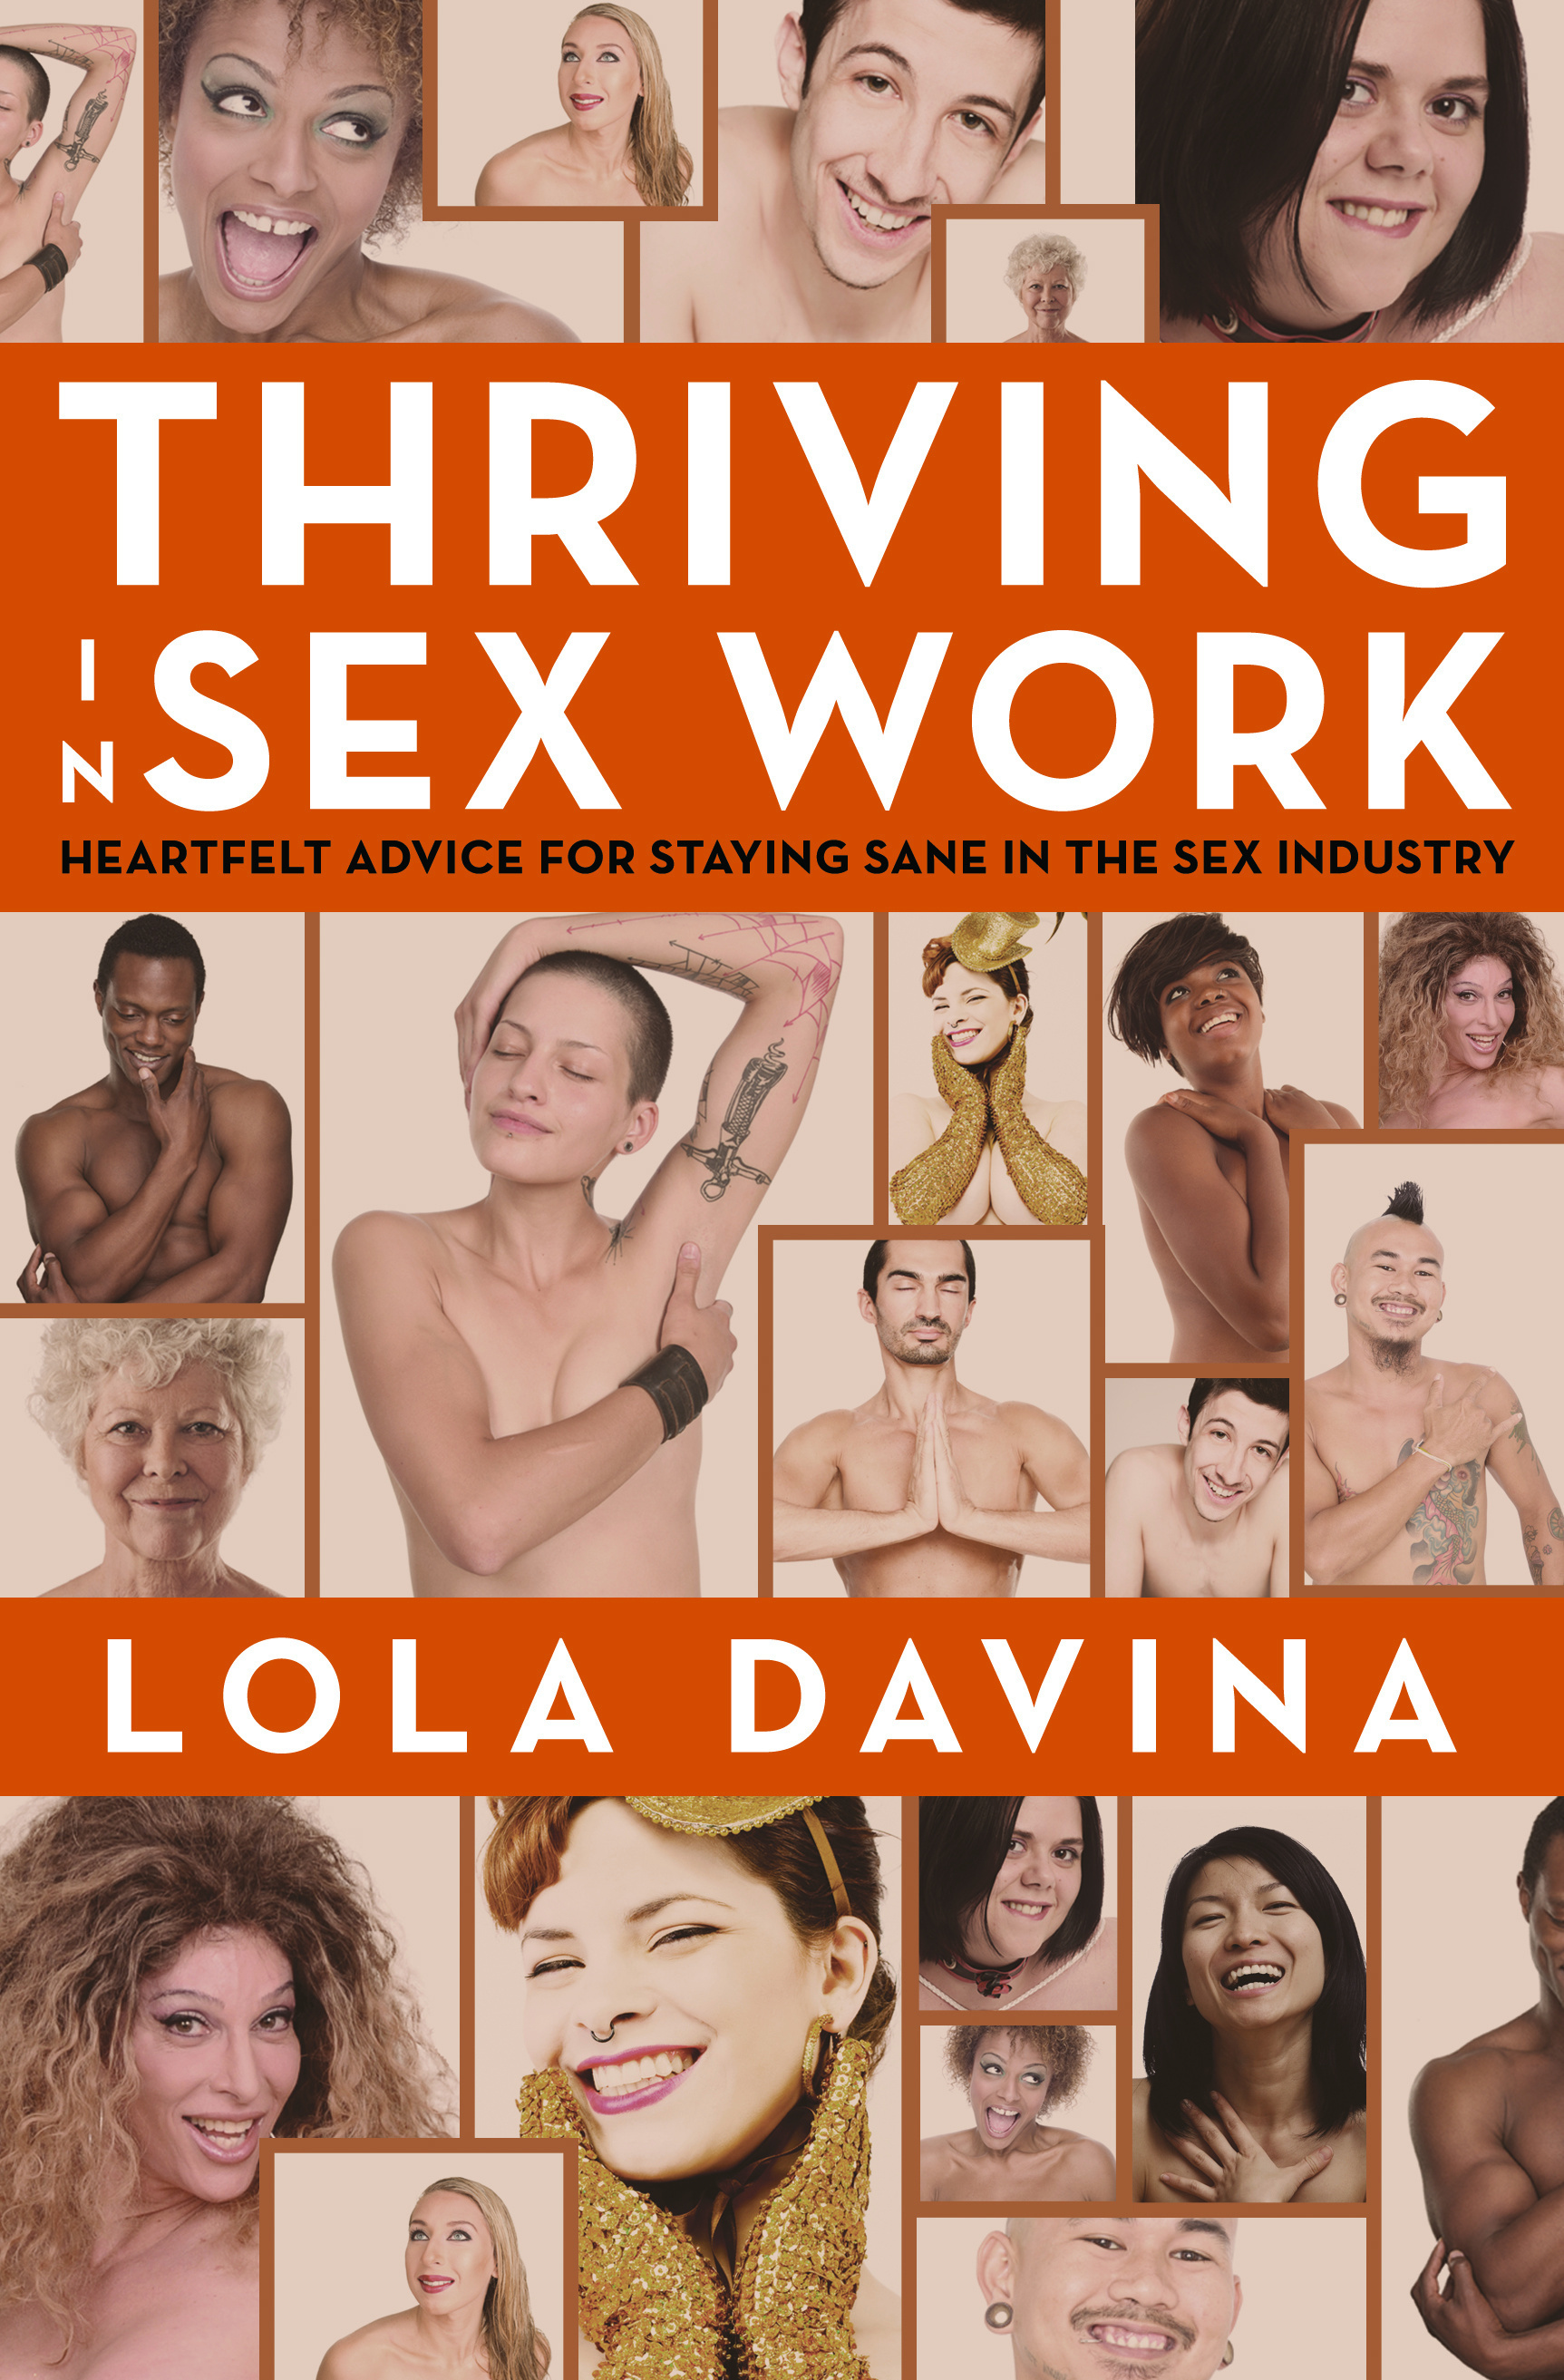 Thriving in Sex Work Heartfelt Advice for Staying Sane in the Sex Industry